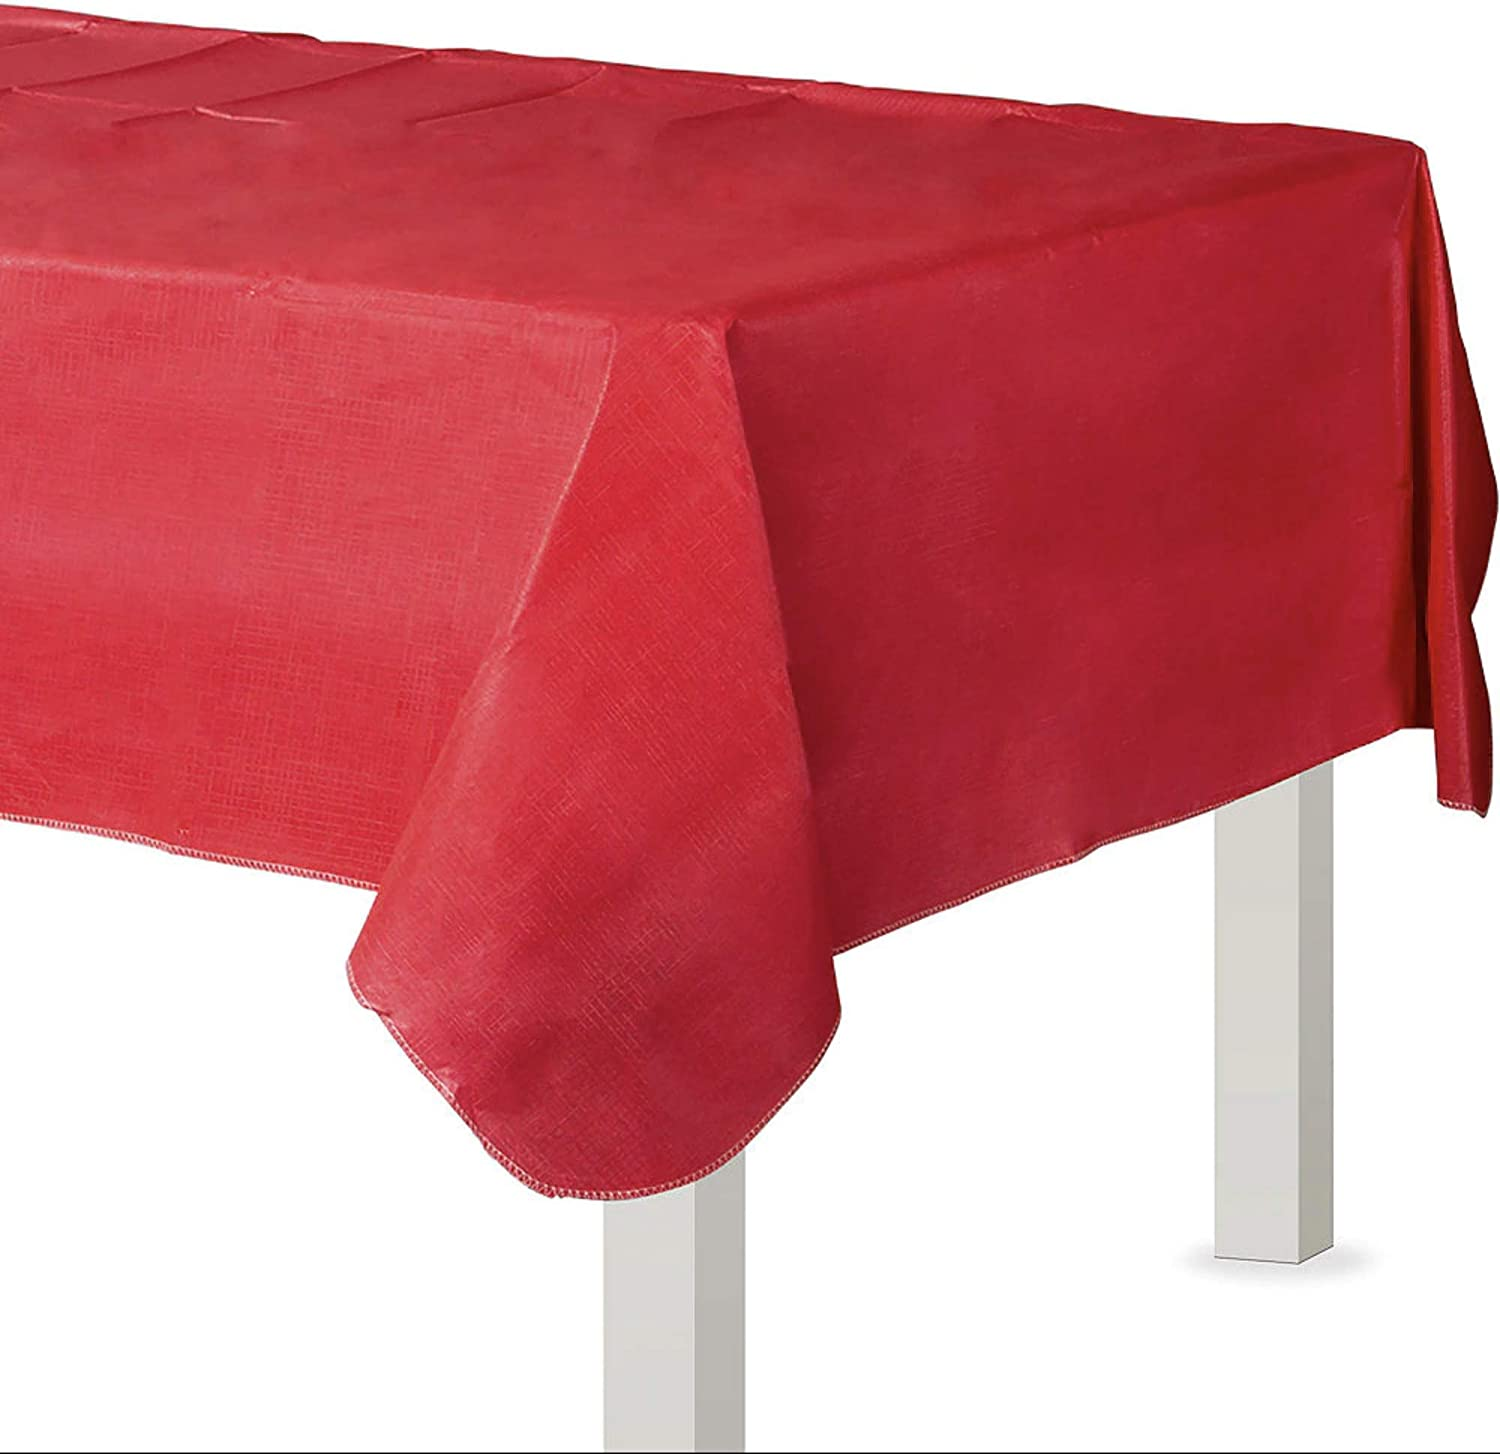 "Amscan 579590.4 Flannel-Backed Oblong Table Cover | Apple Red | 52"" x 90"" 